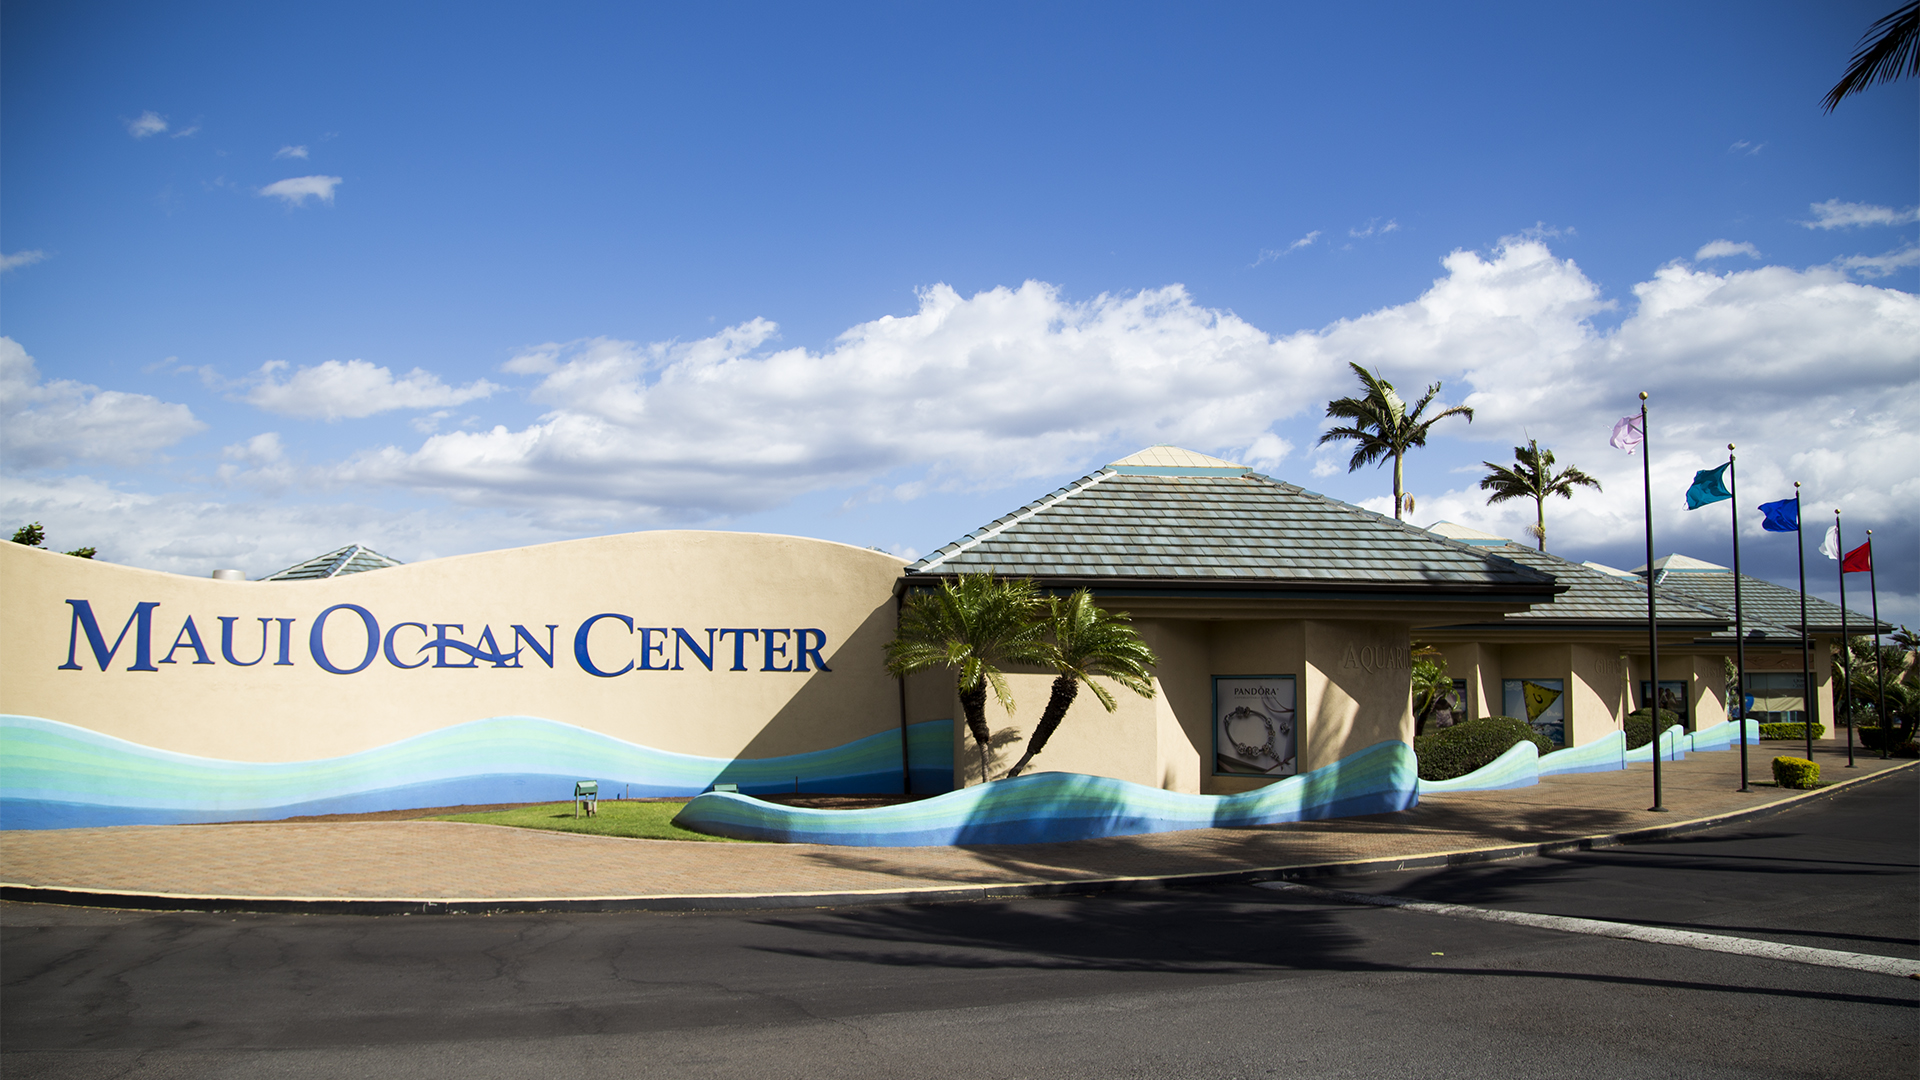 Maui-Ocen-Center-hawaii-mixtourist